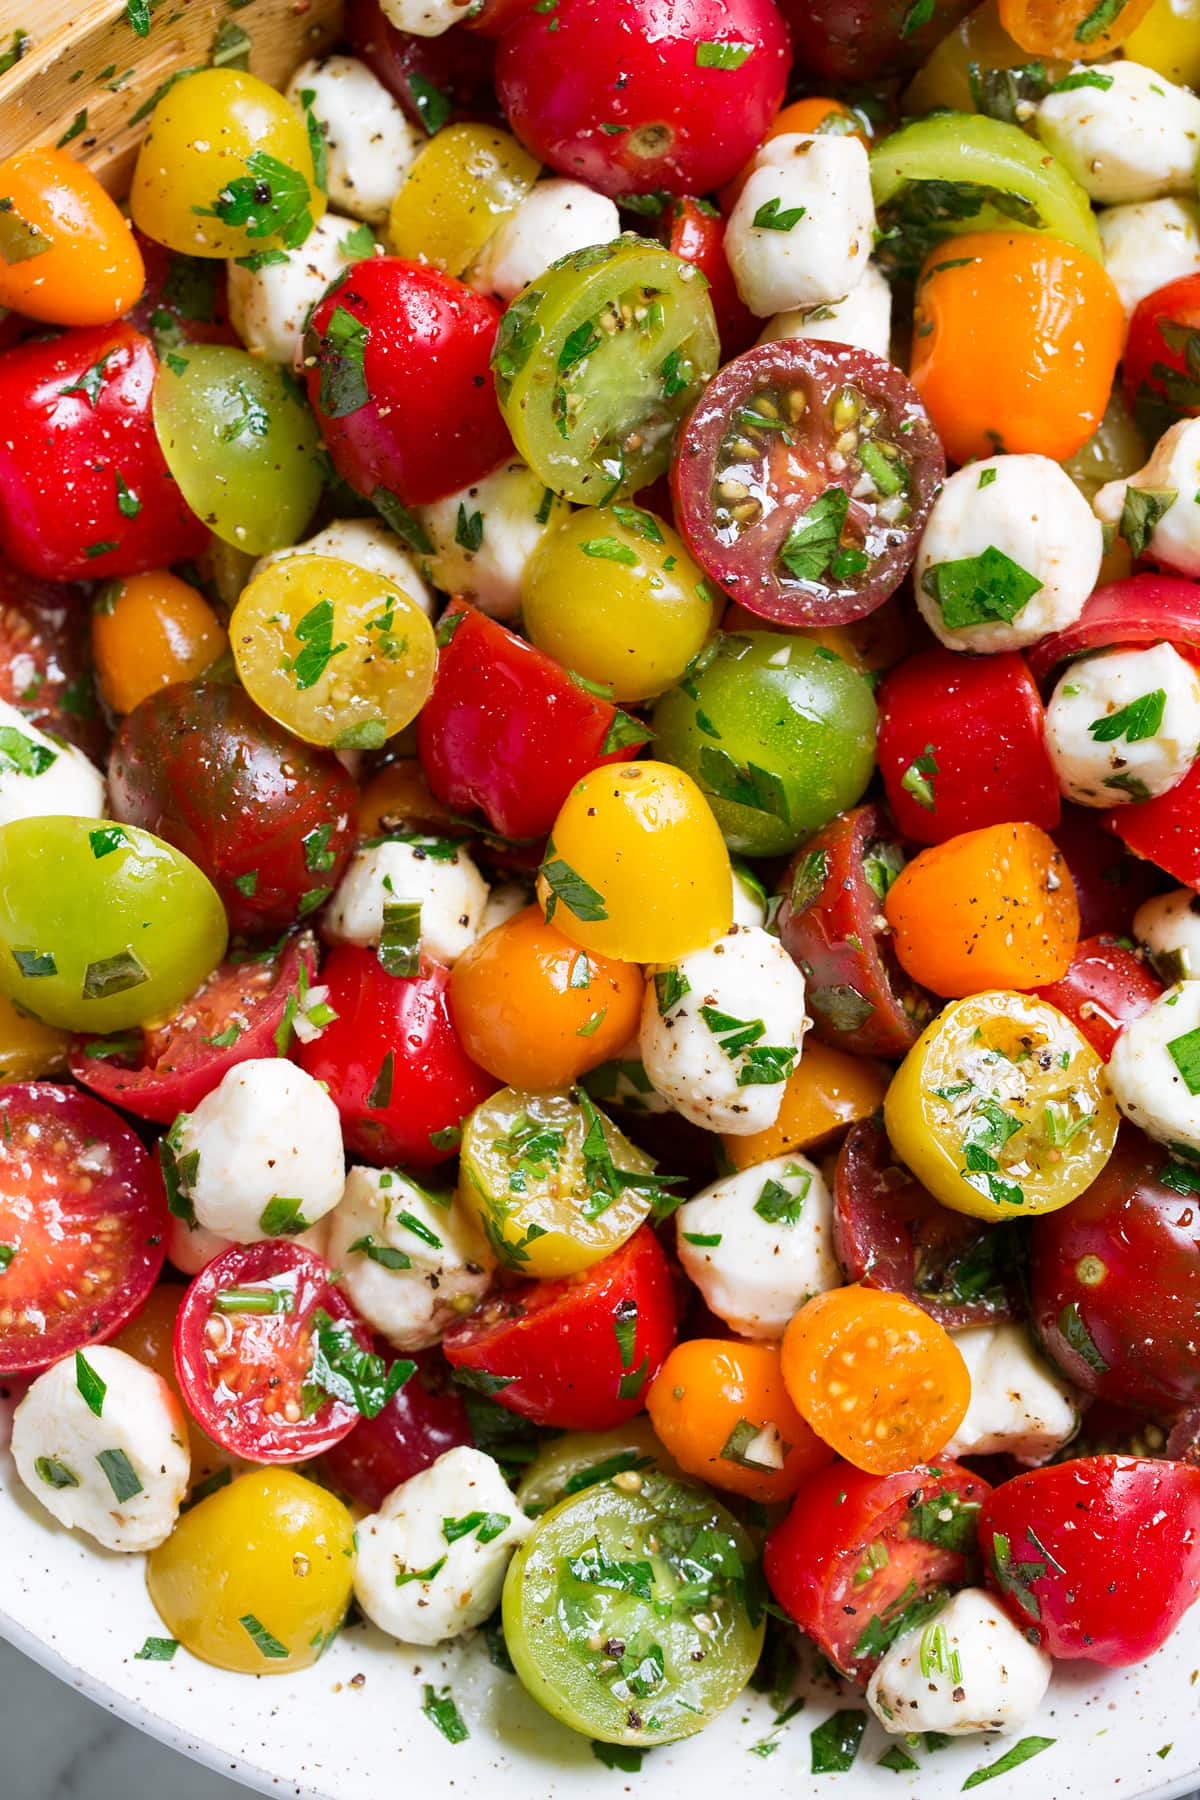 Close up image of tomato salad in a ceramic bowl.